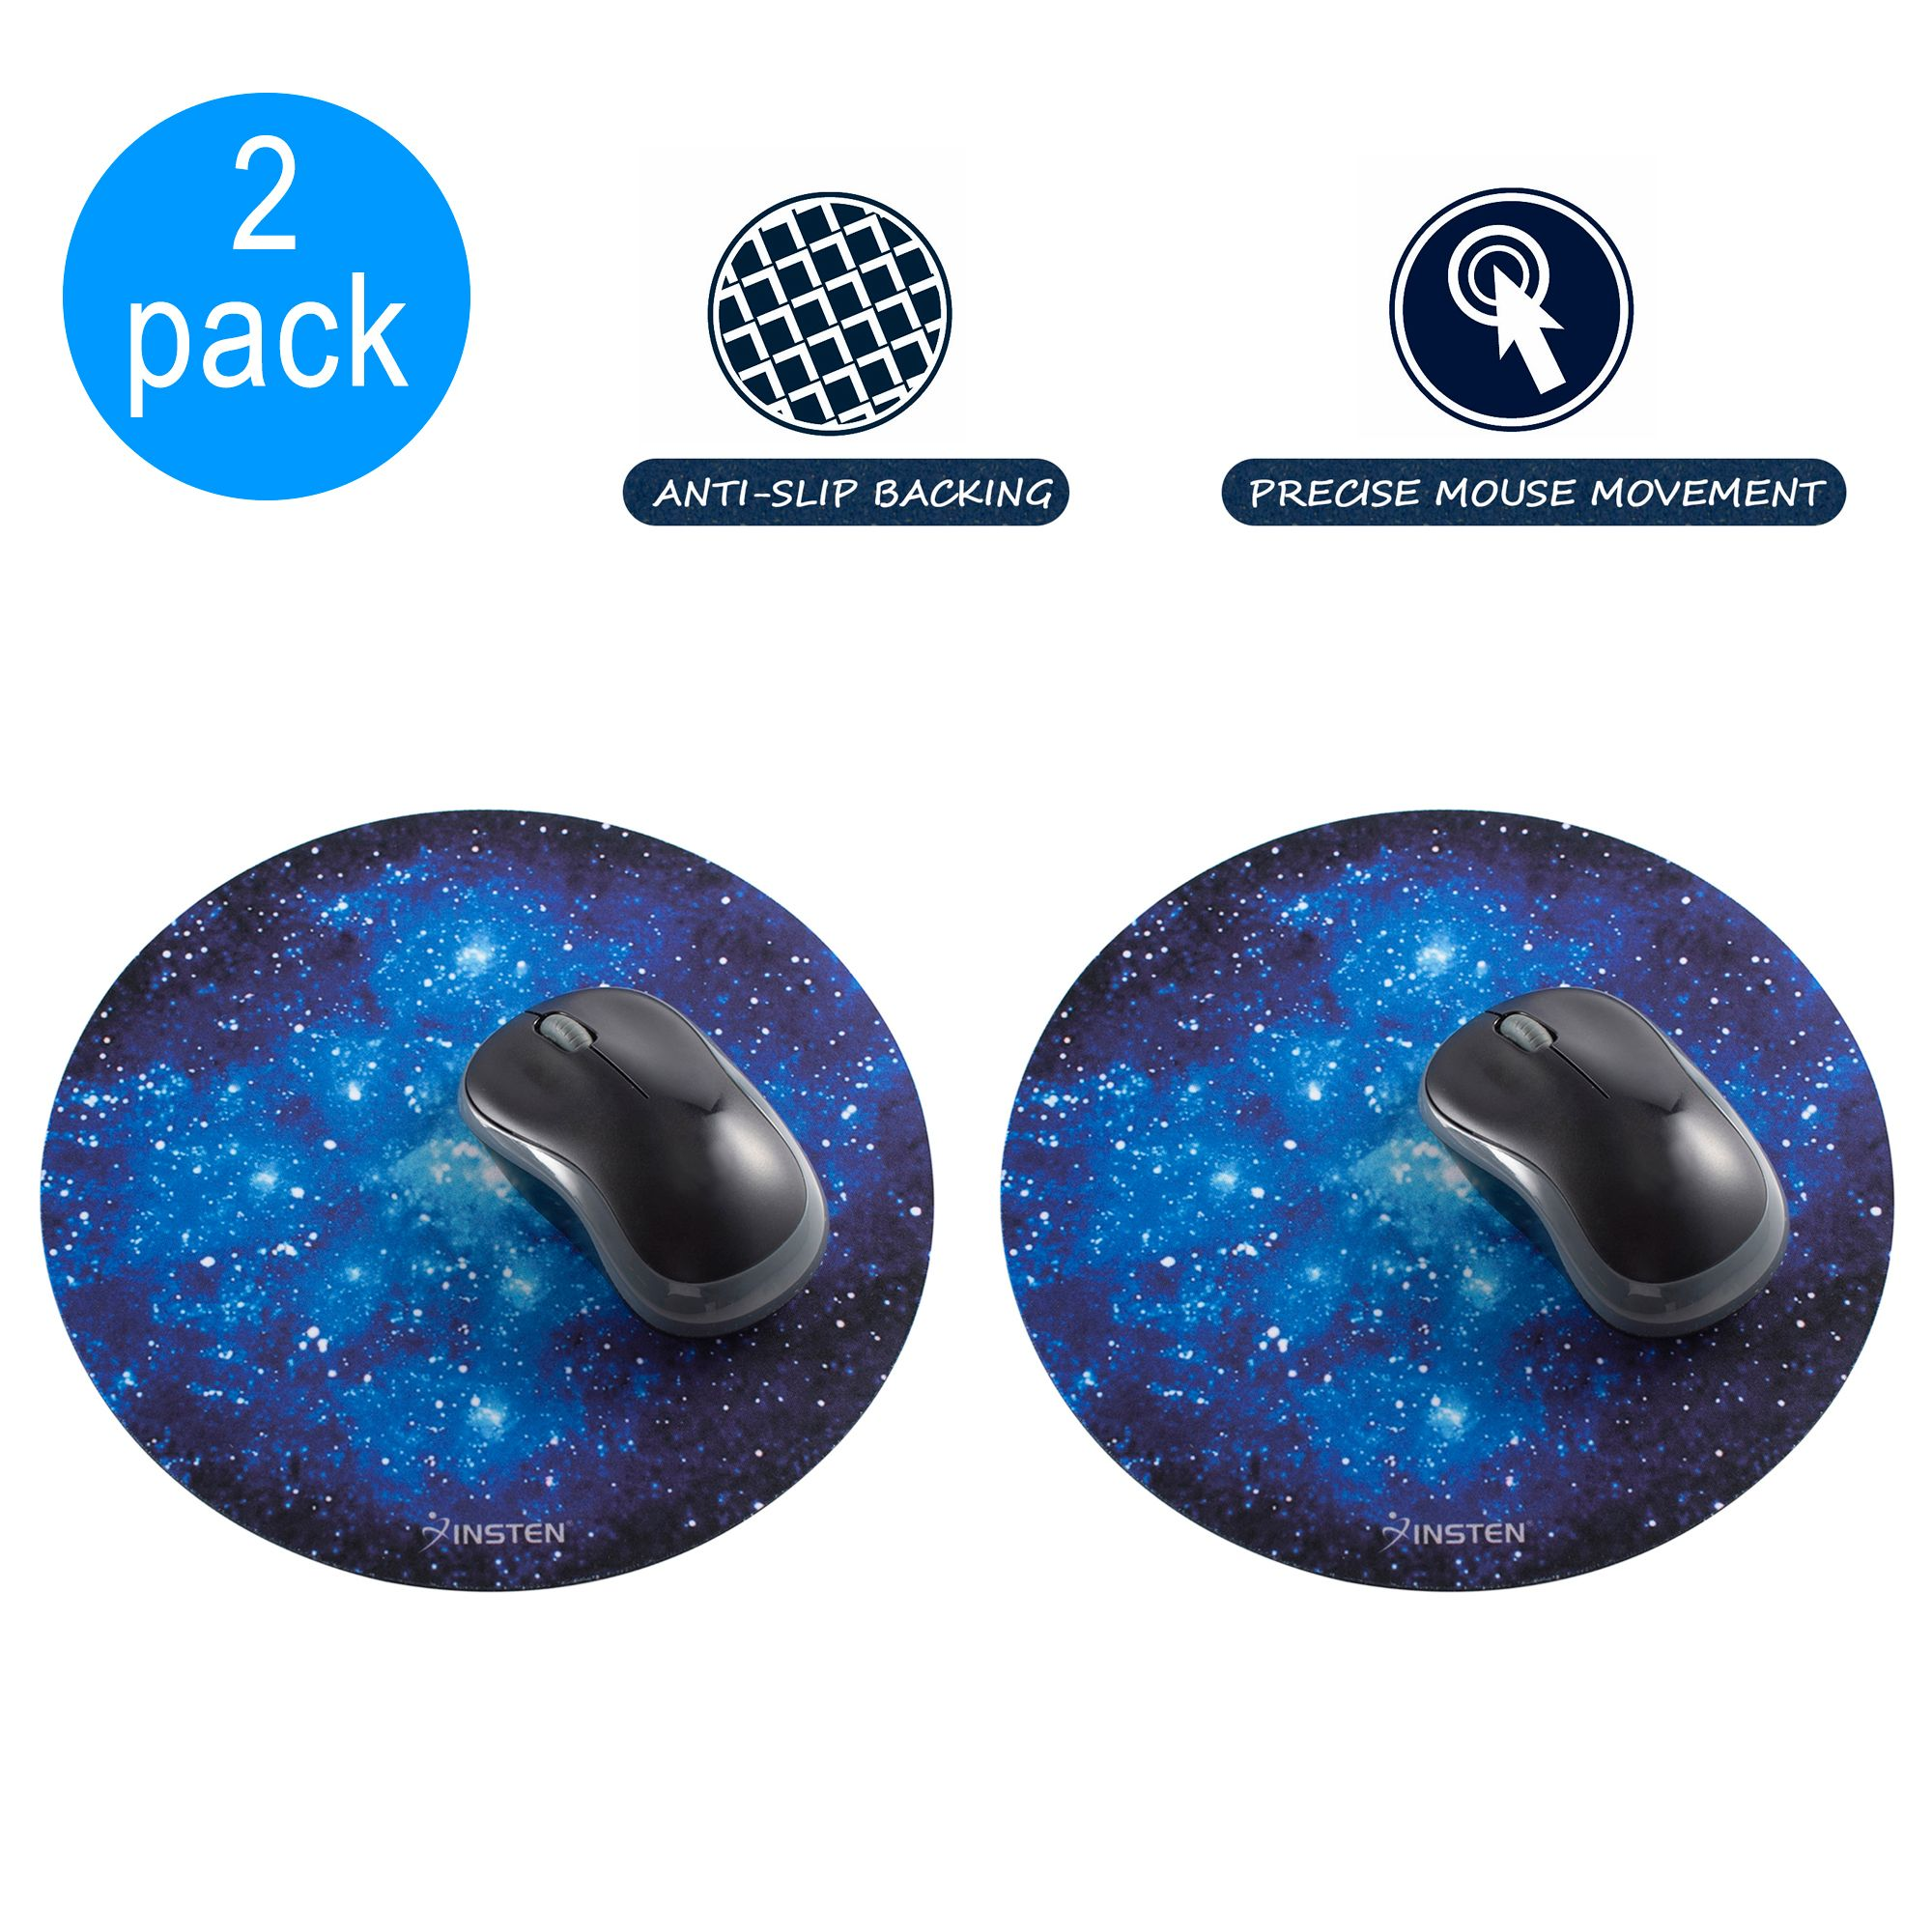 "Insten 2-pack Galactic Space Design Round Galaxy Mouse Mat Pad Anti-Slip Backing Silky Smooth Surface 2mm Ultra Thick Diameter: 8.46"" For Laptop PC Gaming Home Office - Blue Starry Night"